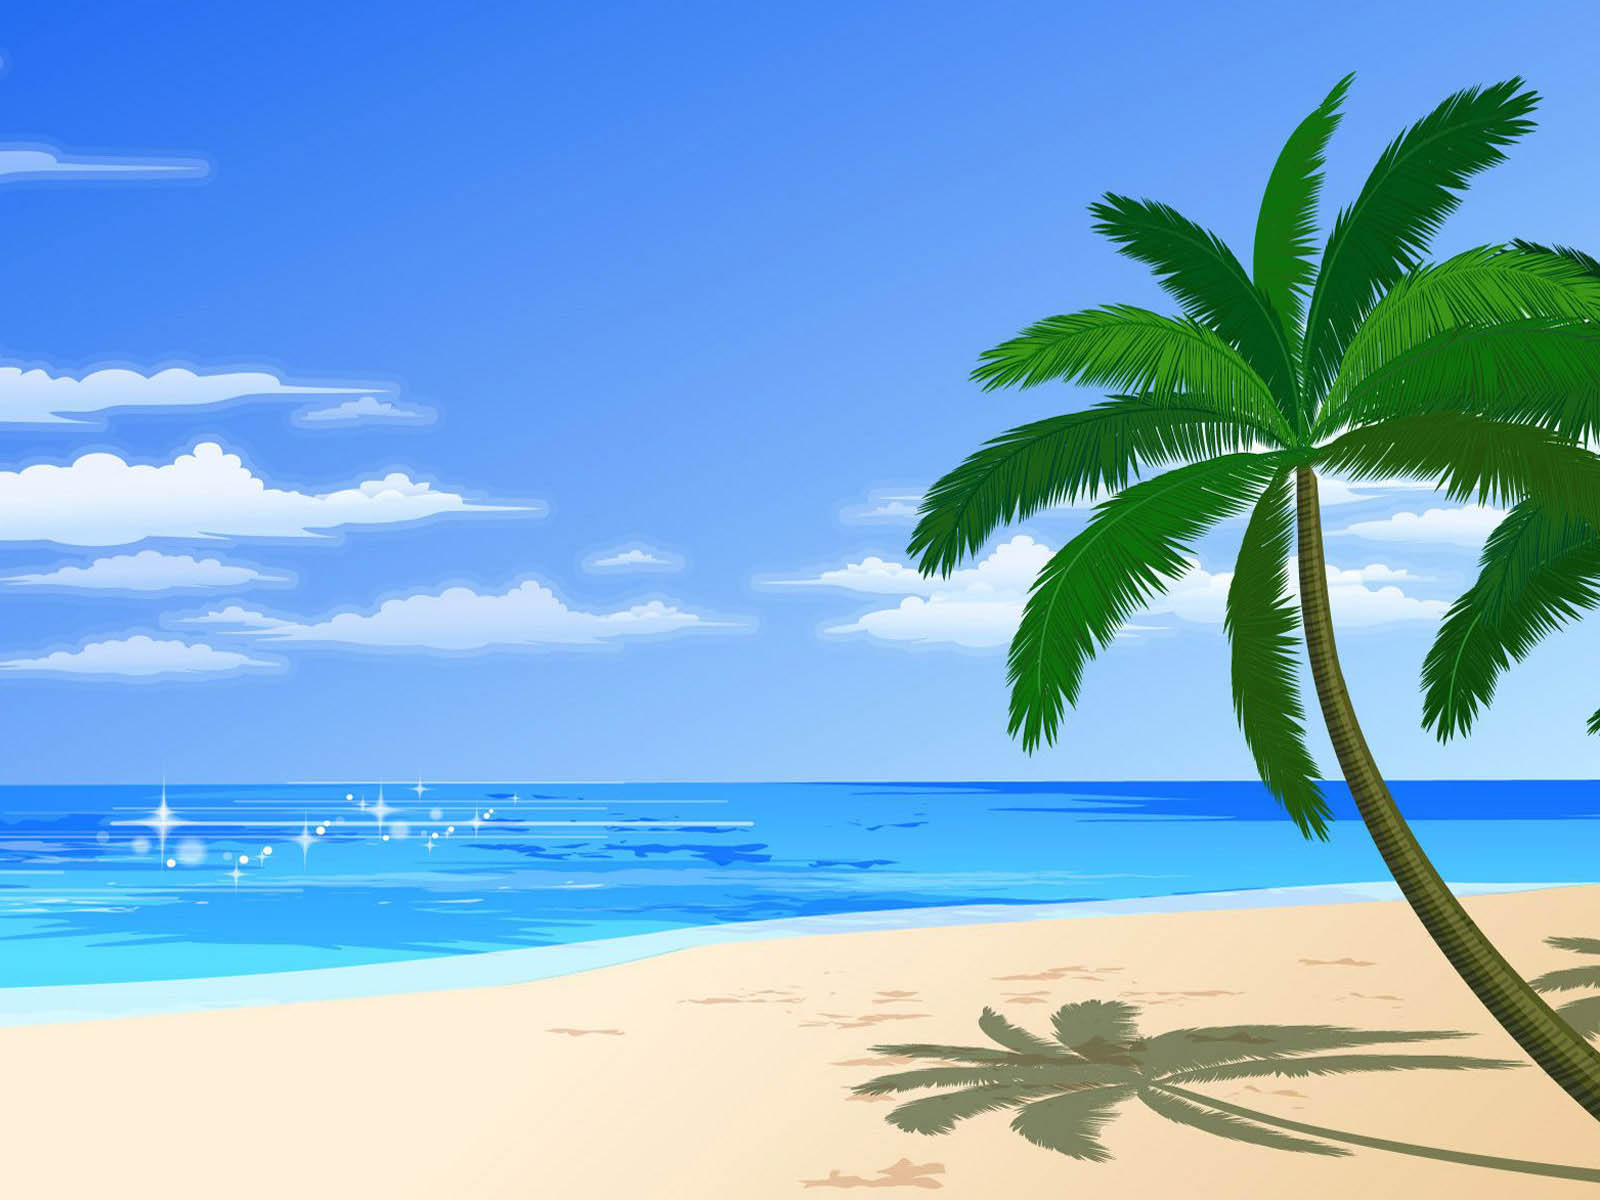 Vector Beach Desktop Wallpaper 1600x1200